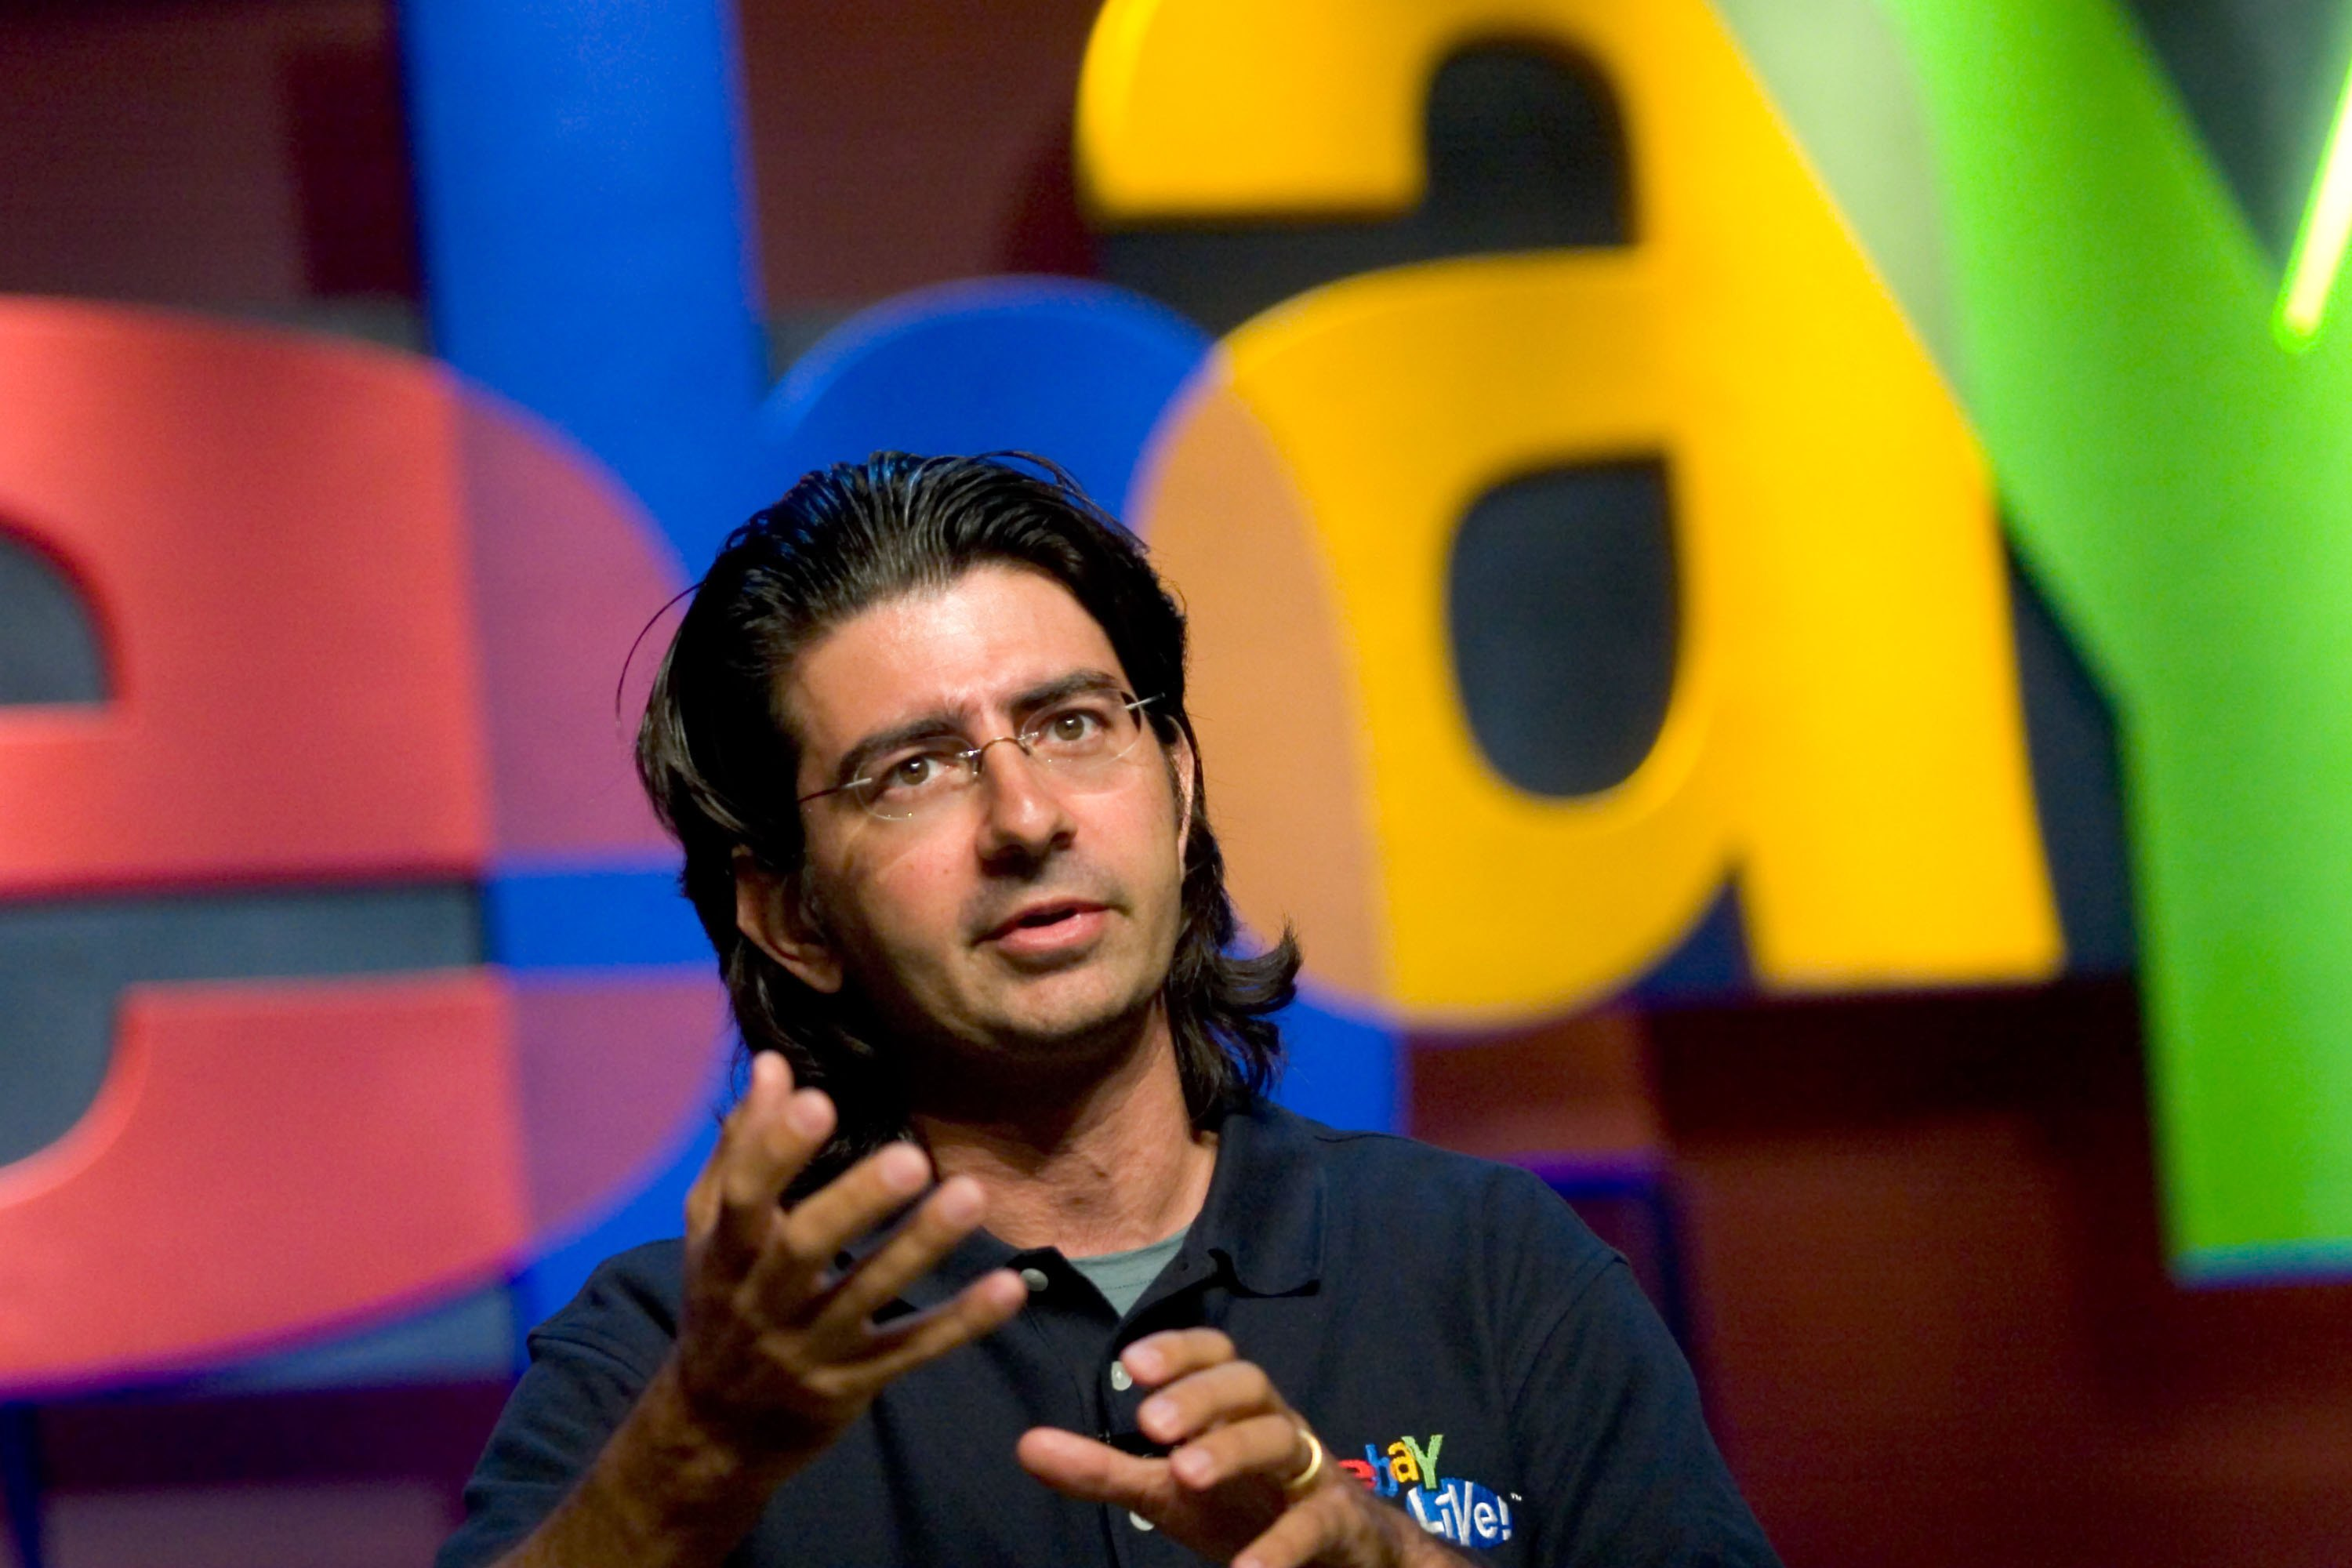 Pierre Omidyar, founder and chairman